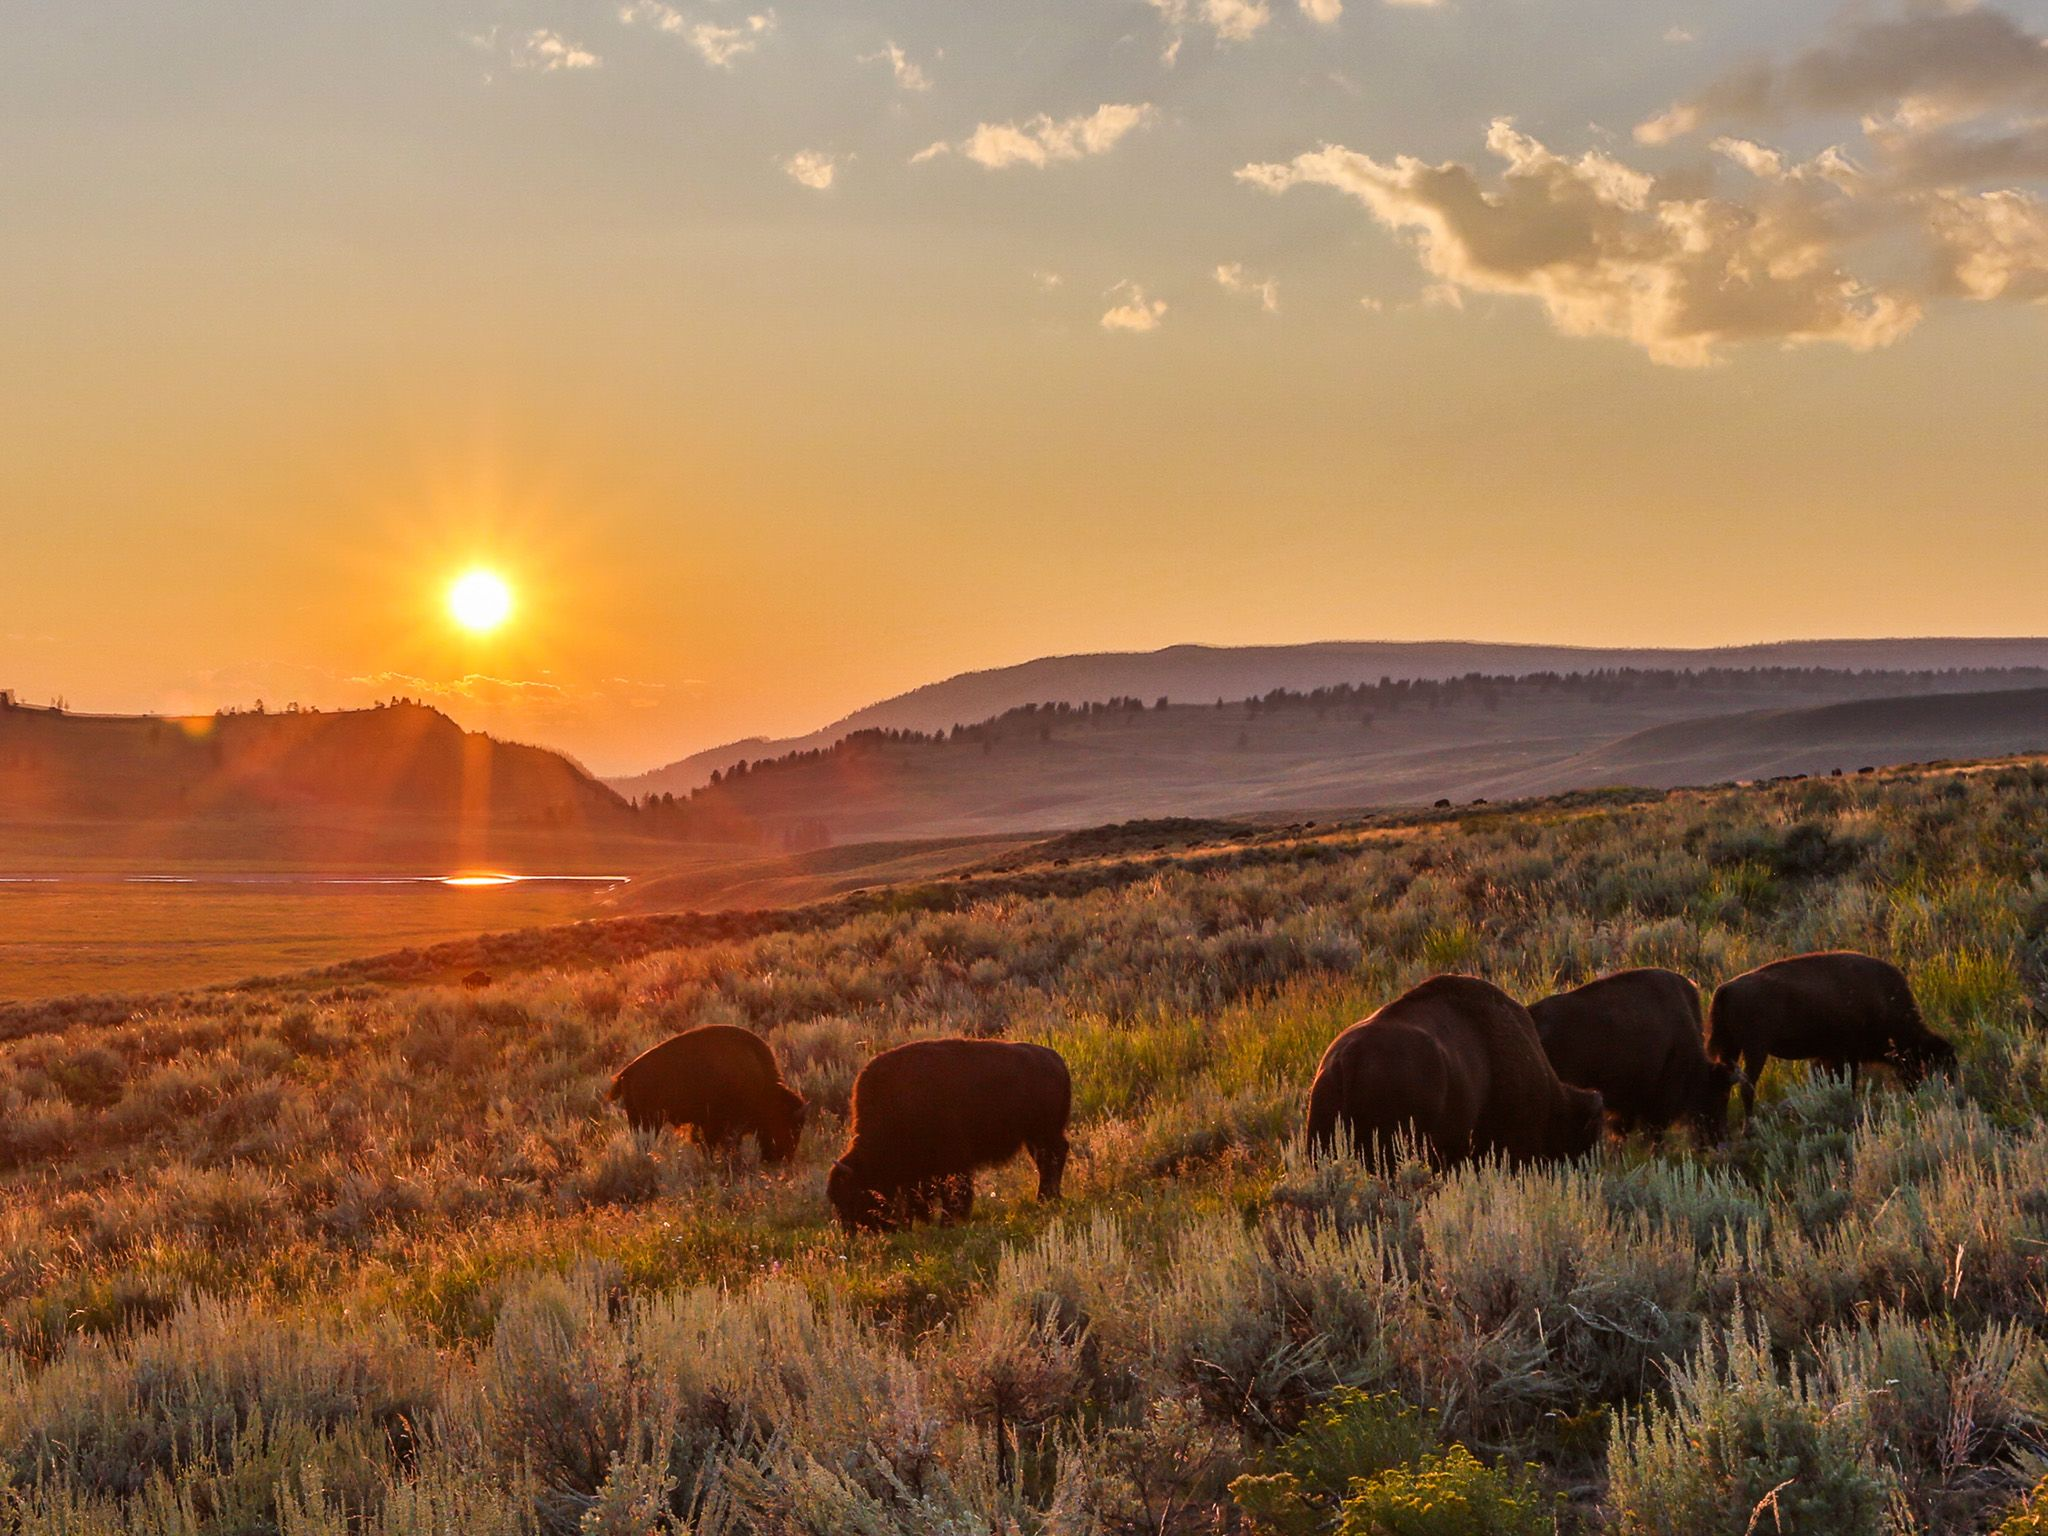 Yellowstone, Wyo.: Bison herd in summer evening light during the bison rut. This image is from... [Photo of the day - آوریل 2015]